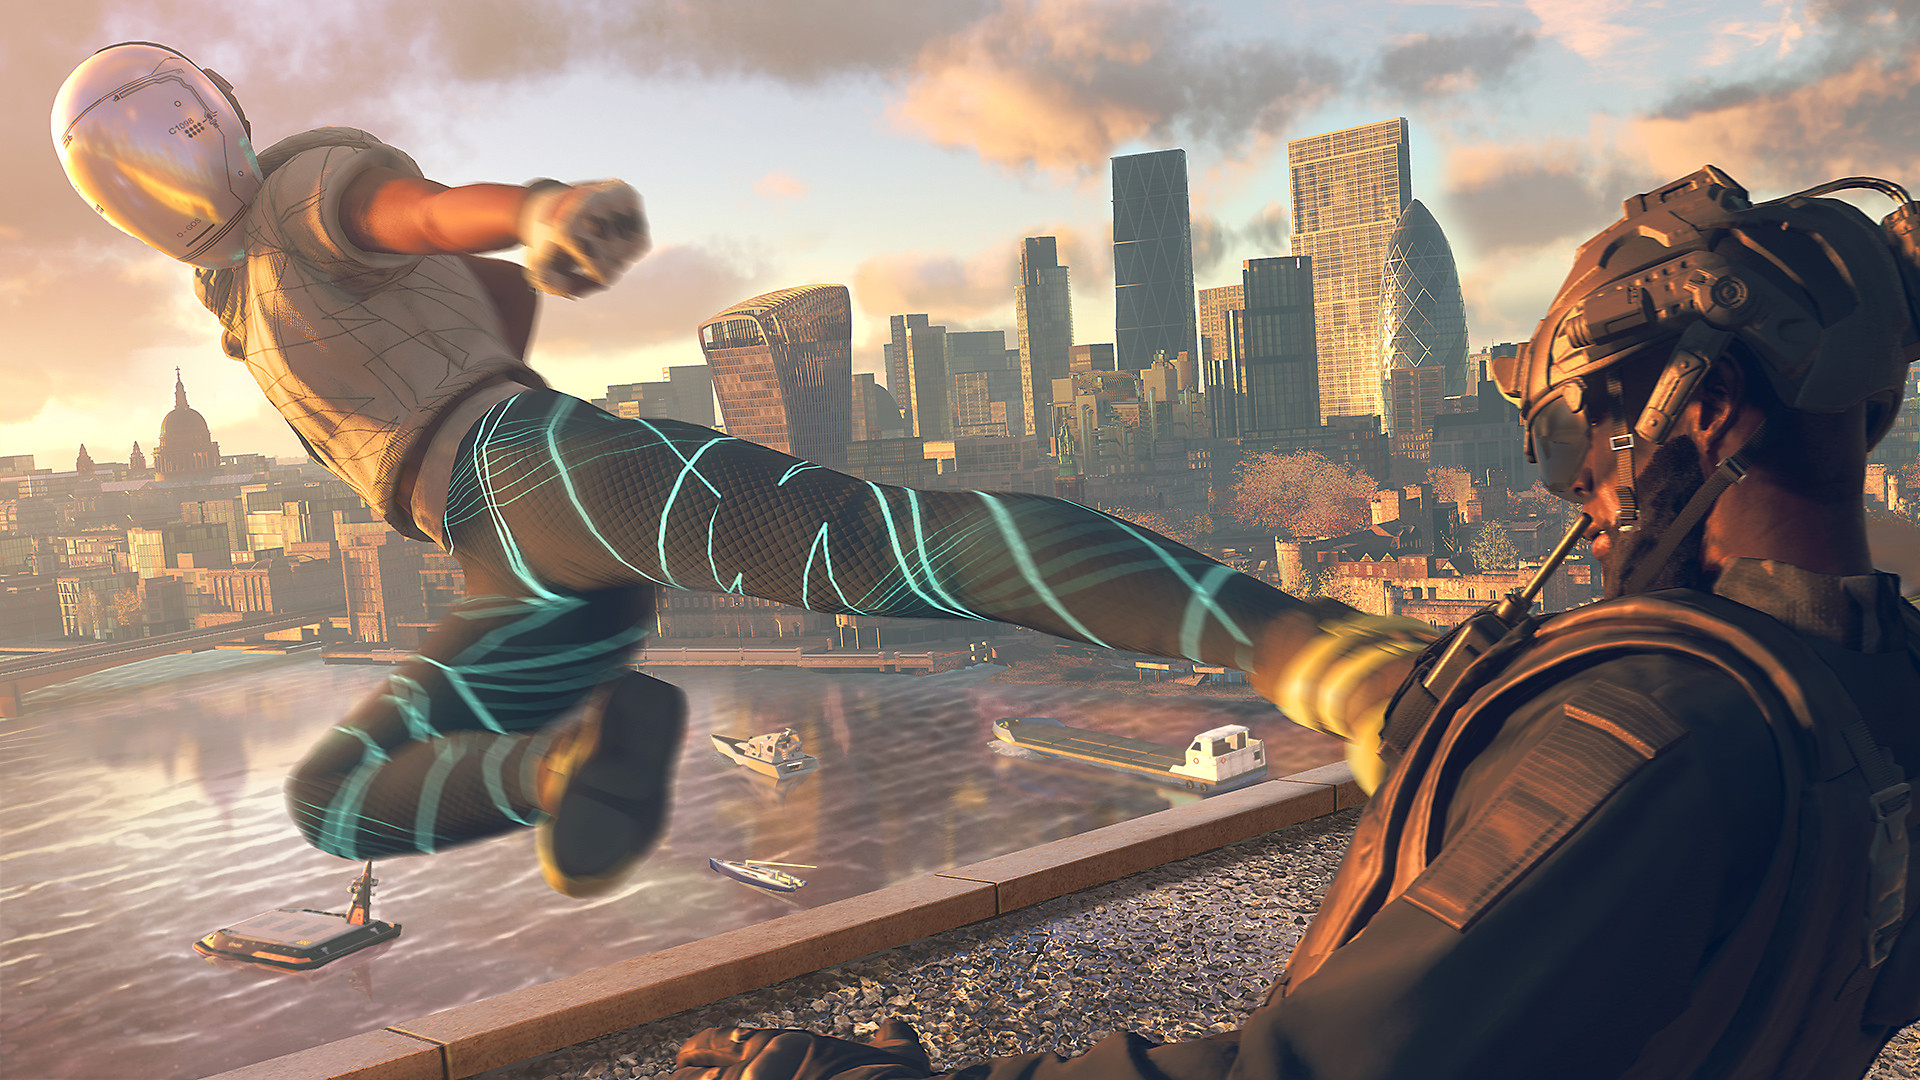 Watch Dogs Legion screenshot - Character delivering a high kick